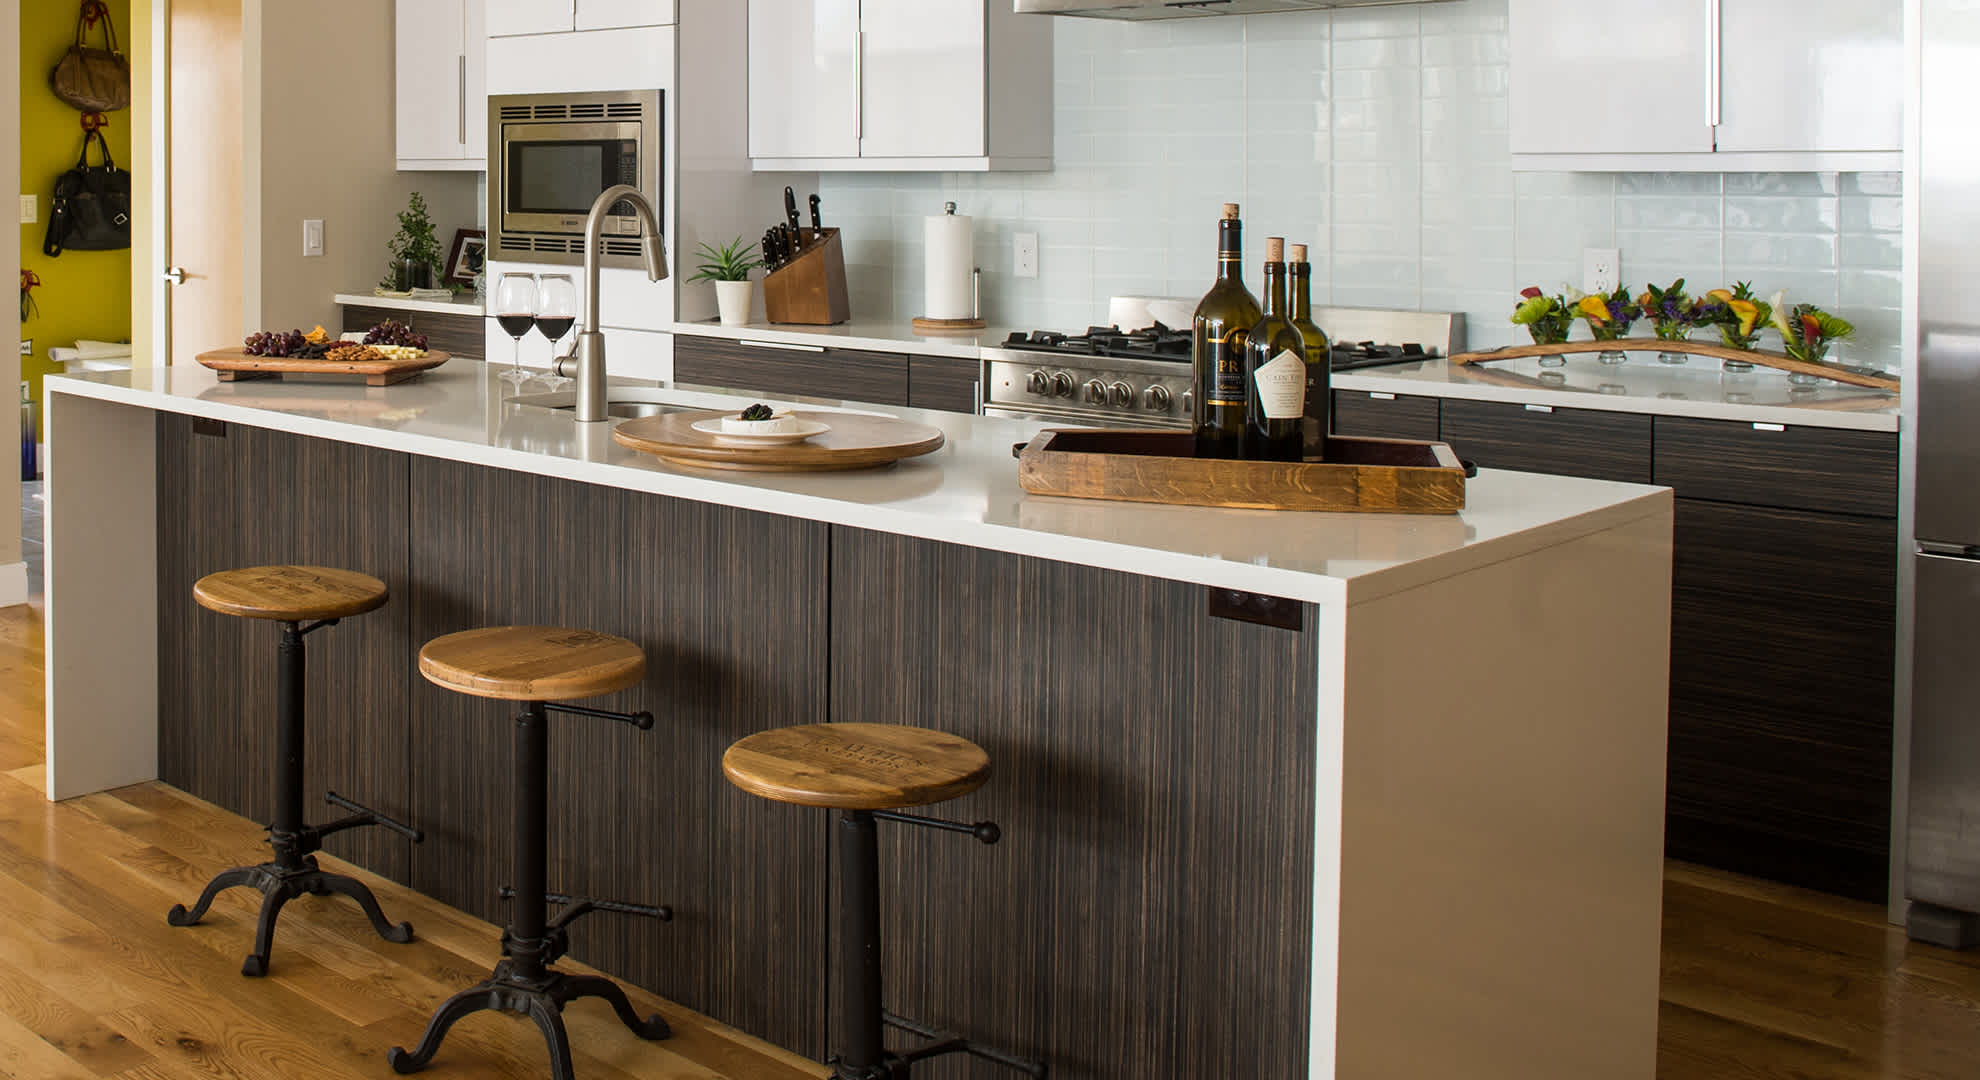 Alpine Wine Design is an artisan designed and built collection of wine barrel furniture and home decor. Our family owned company gives old vintner supplies a new life by creating beautifully crafted furniture and functional pieces of art from wine crates and barrels. Proudly made in Colorado since 2006.